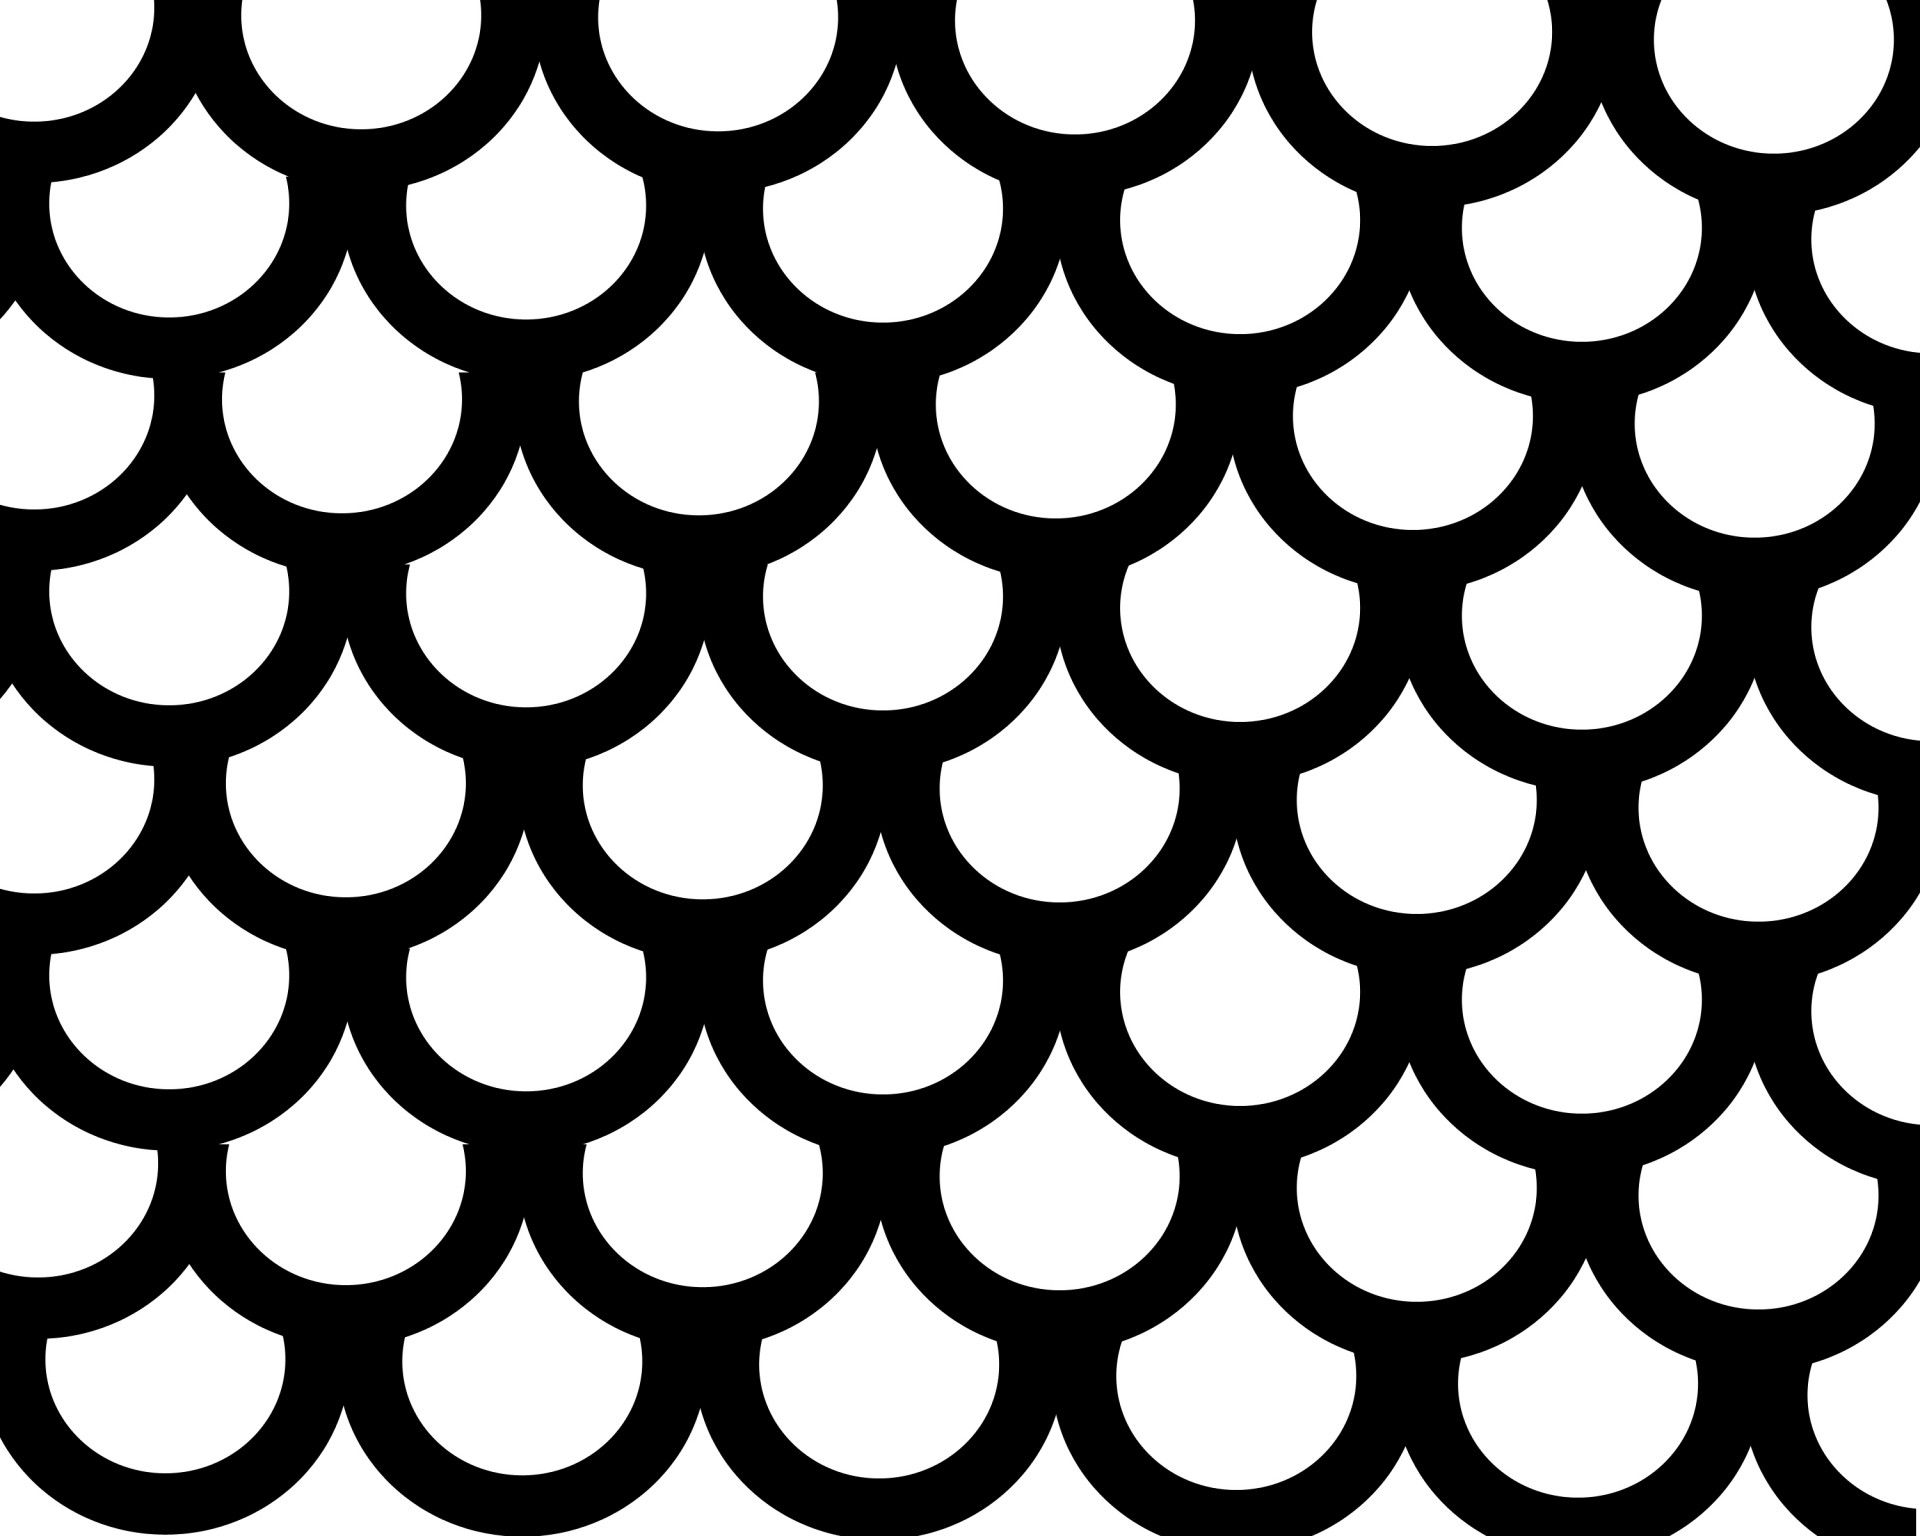 Fish Scales Pattern Free Stock Photo Hd Public Domain Pictures Cricut Projects Vinyl Silhouette Template Silhouette Cameo Projects